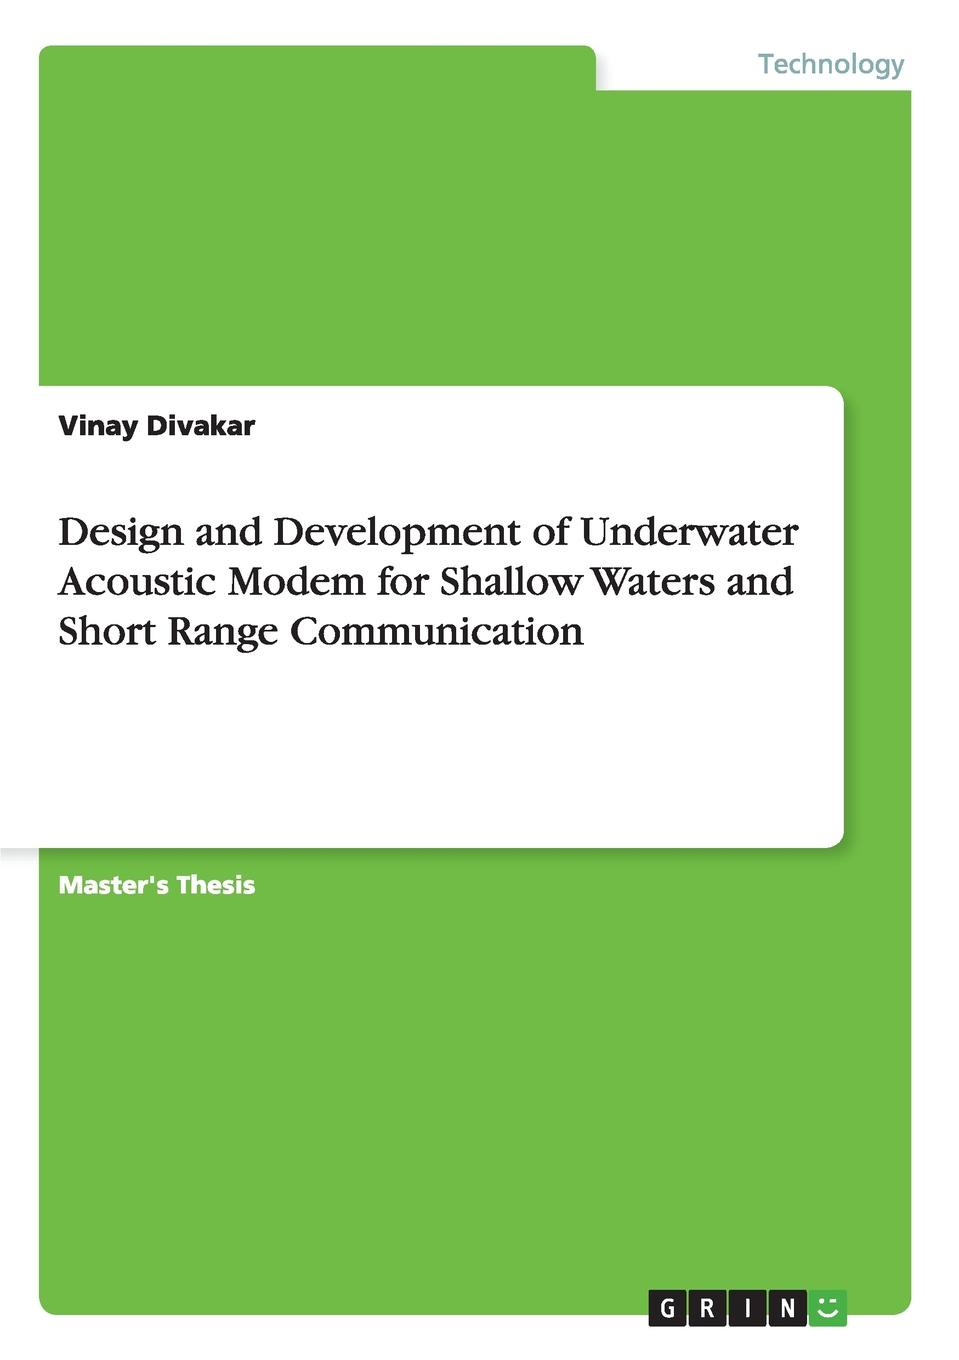 Vinay Divakar Design and Development of Underwater Acoustic Modem for Shallow Waters and Short Range Communication